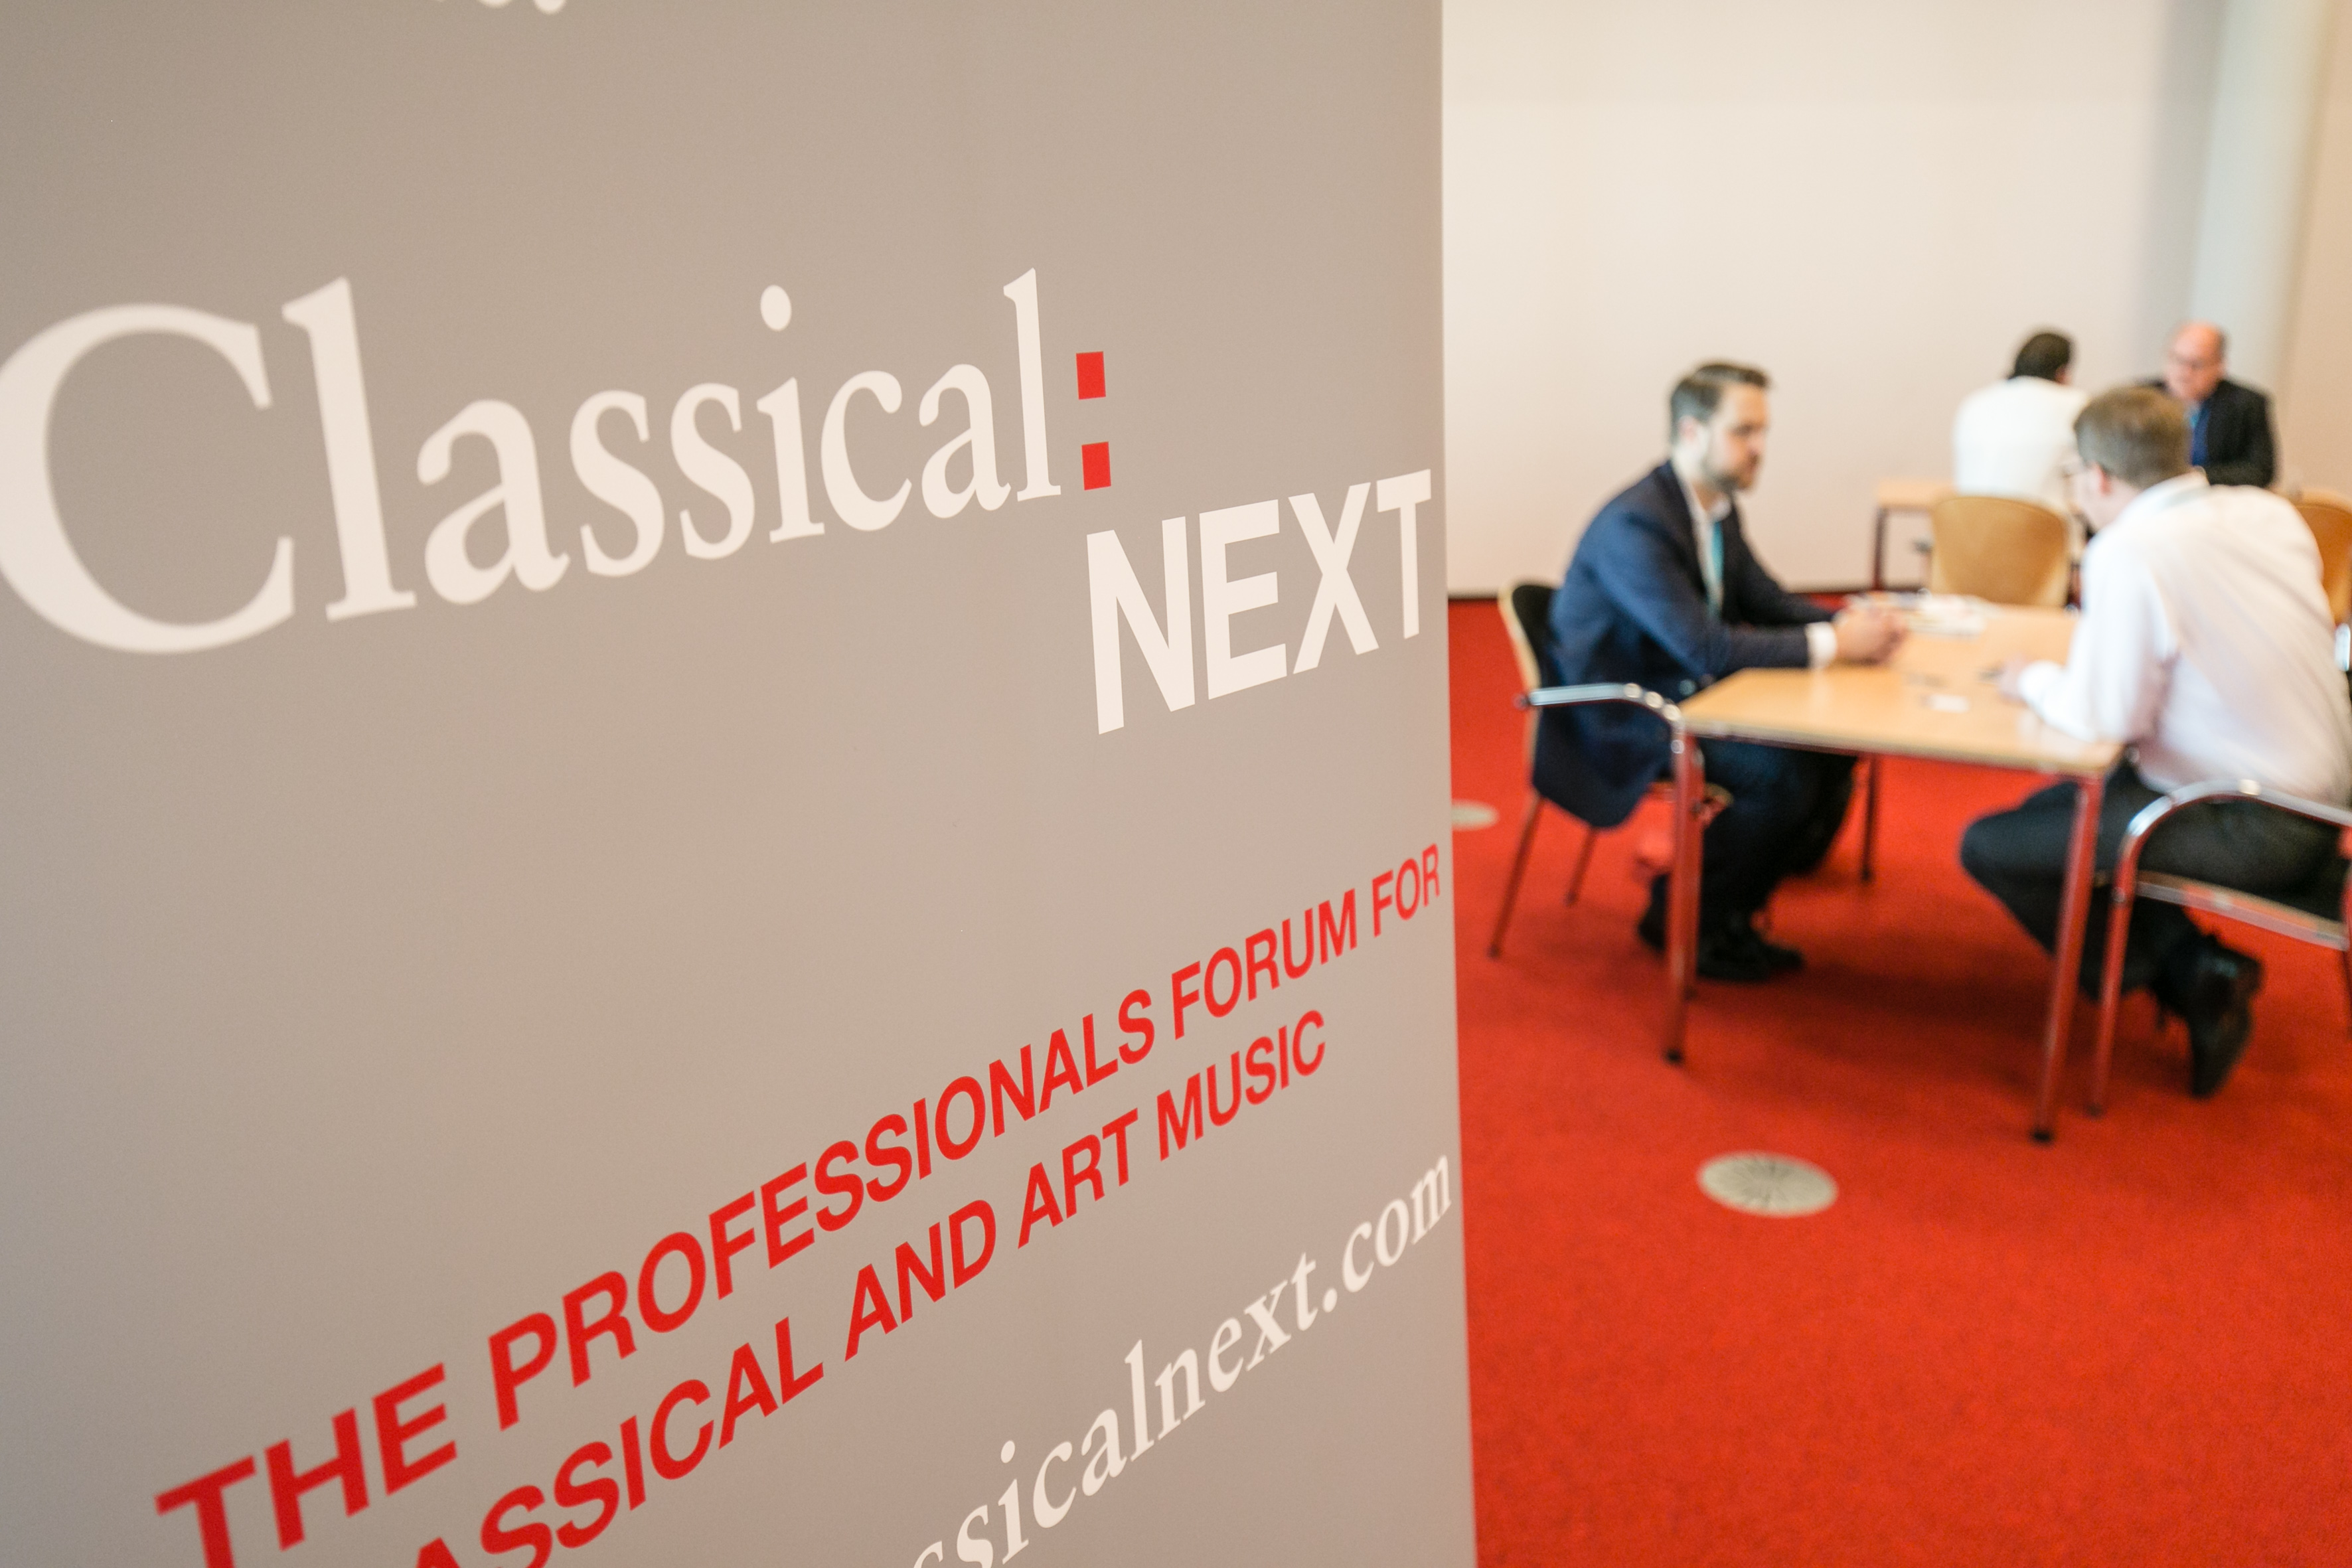 Expo at Classical:NEXT 2016, by Eric van Nieuwland